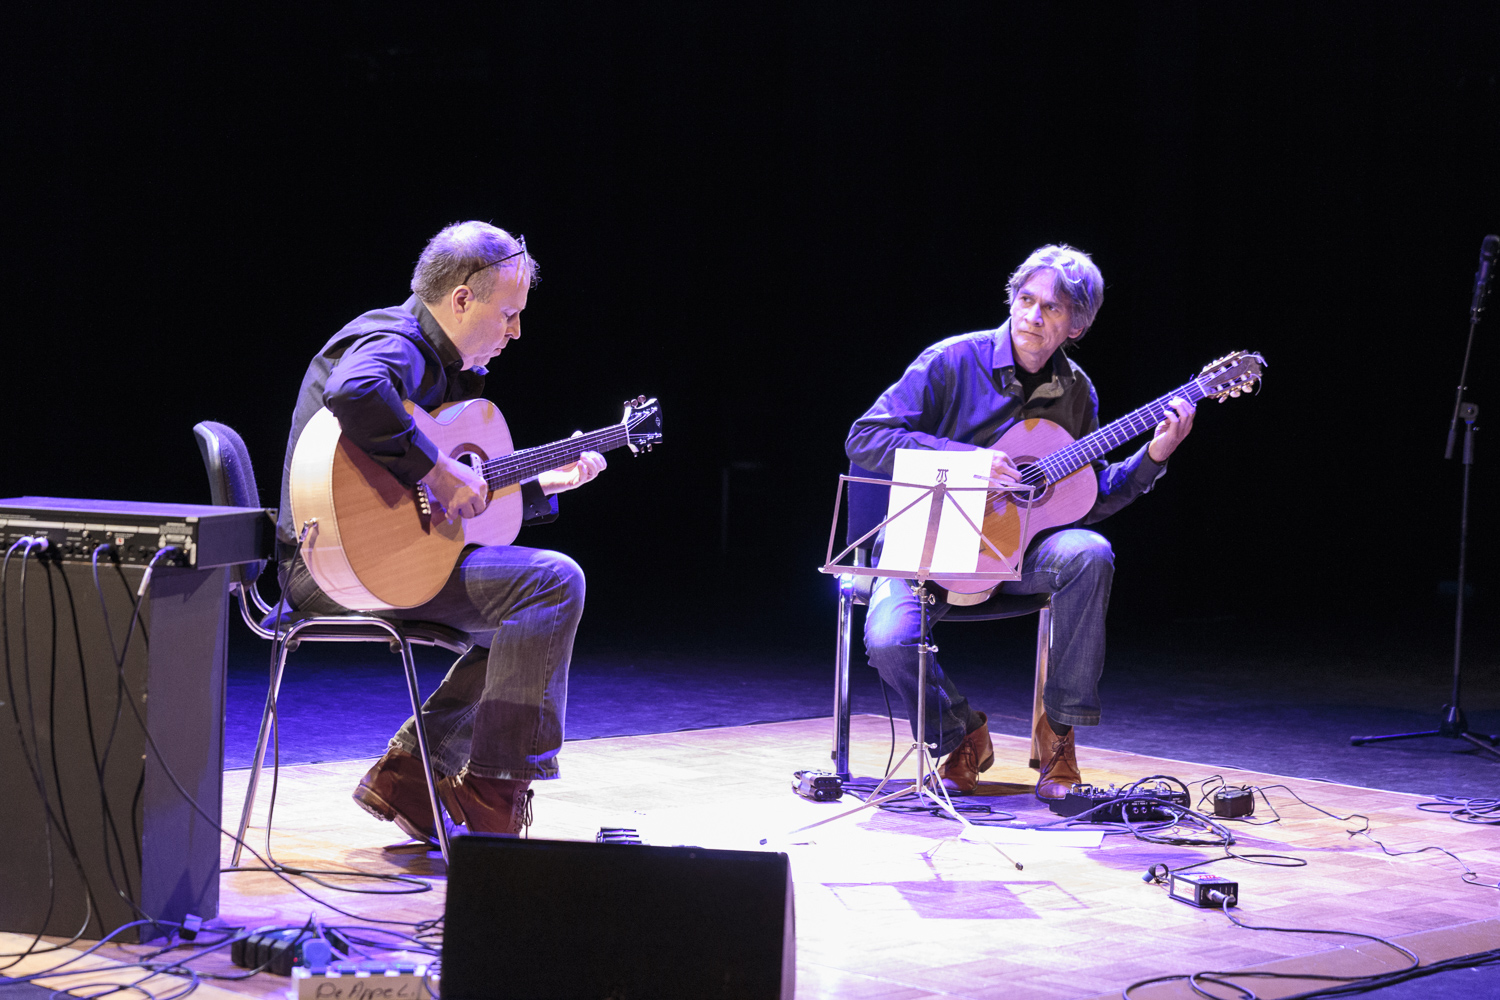 Concert by Olaf Tarenskeen and Axel Hagen.